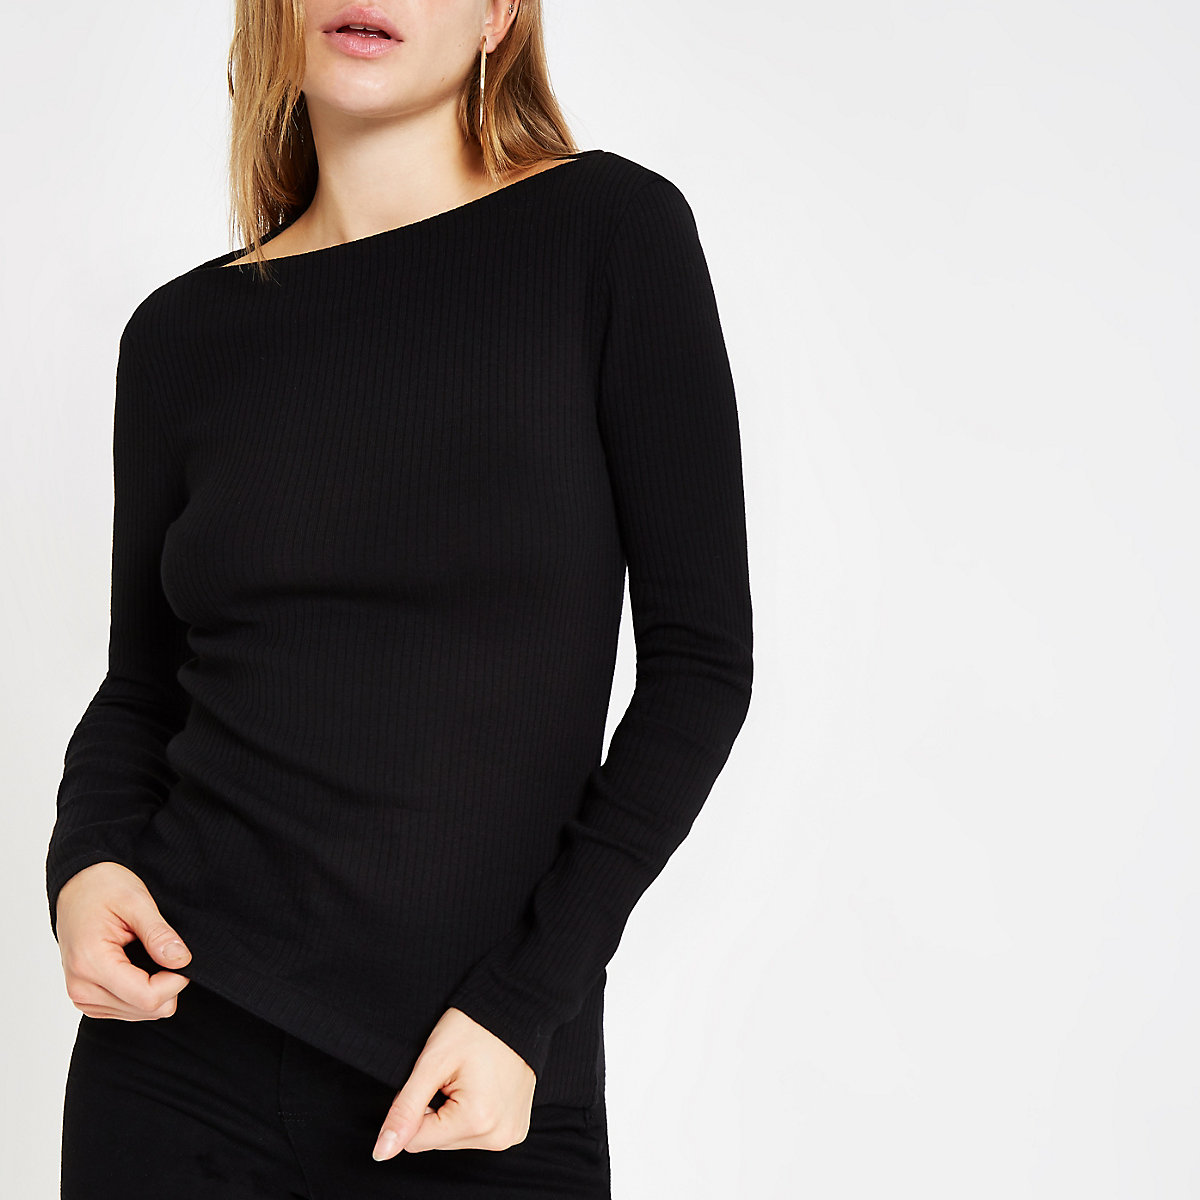 Black ribbed boat neck long sleeve top